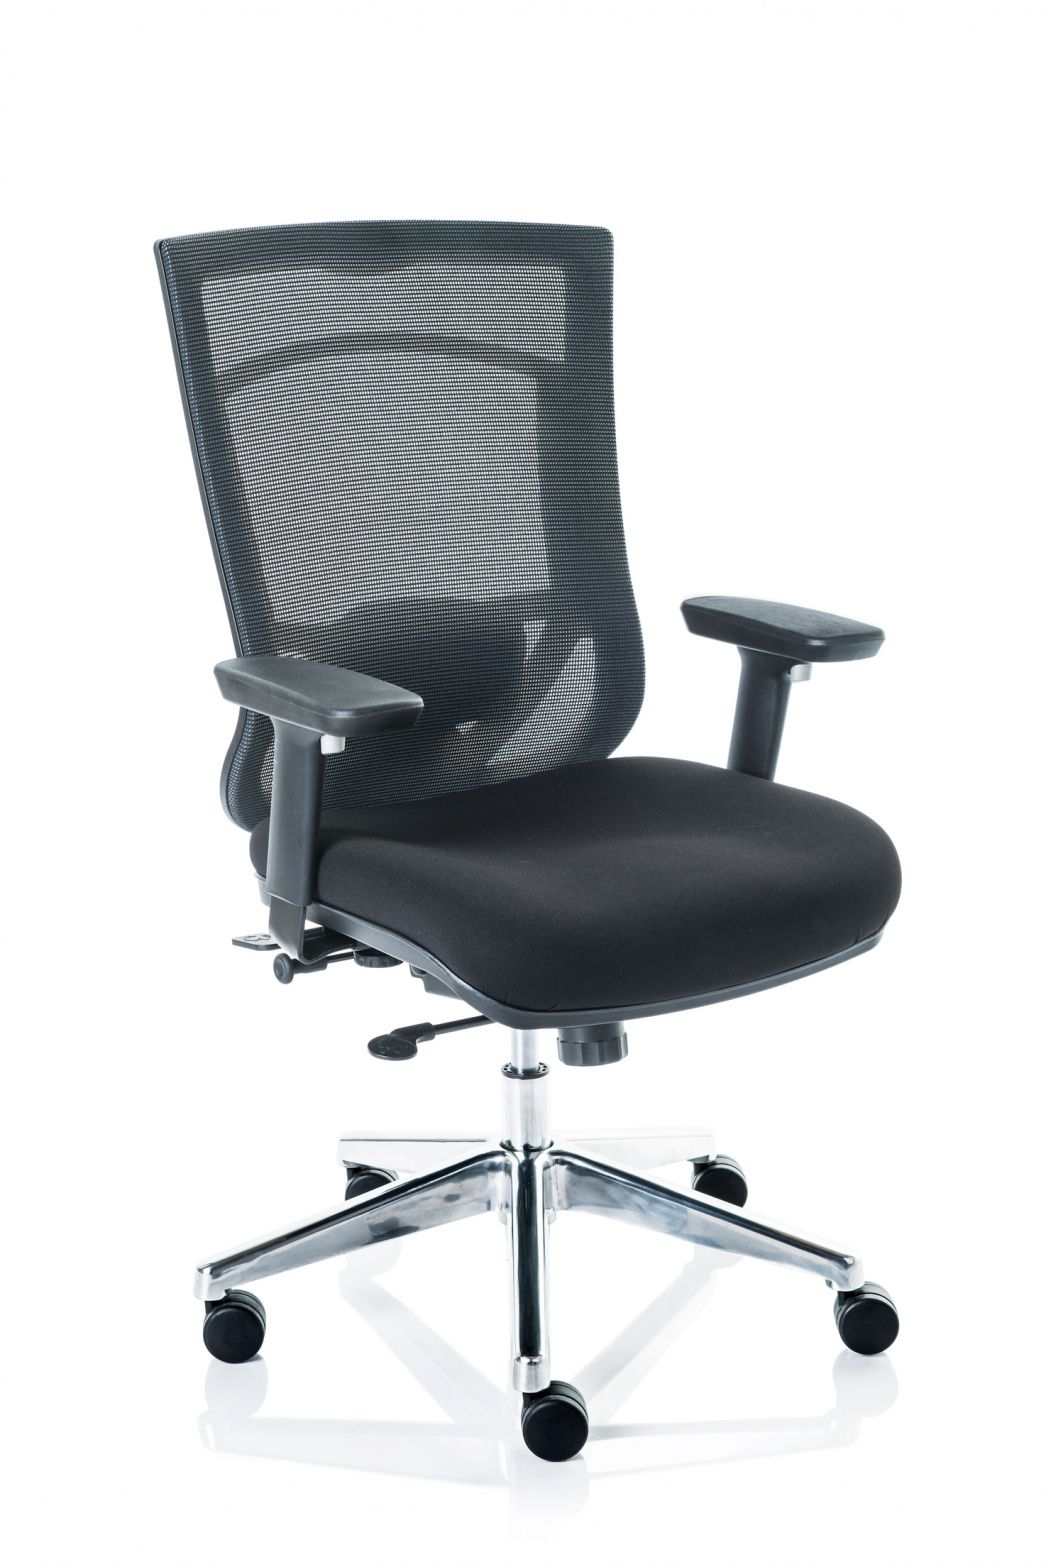 55 Office Chairs In Bulk Home Furniture Sets Check More At Http